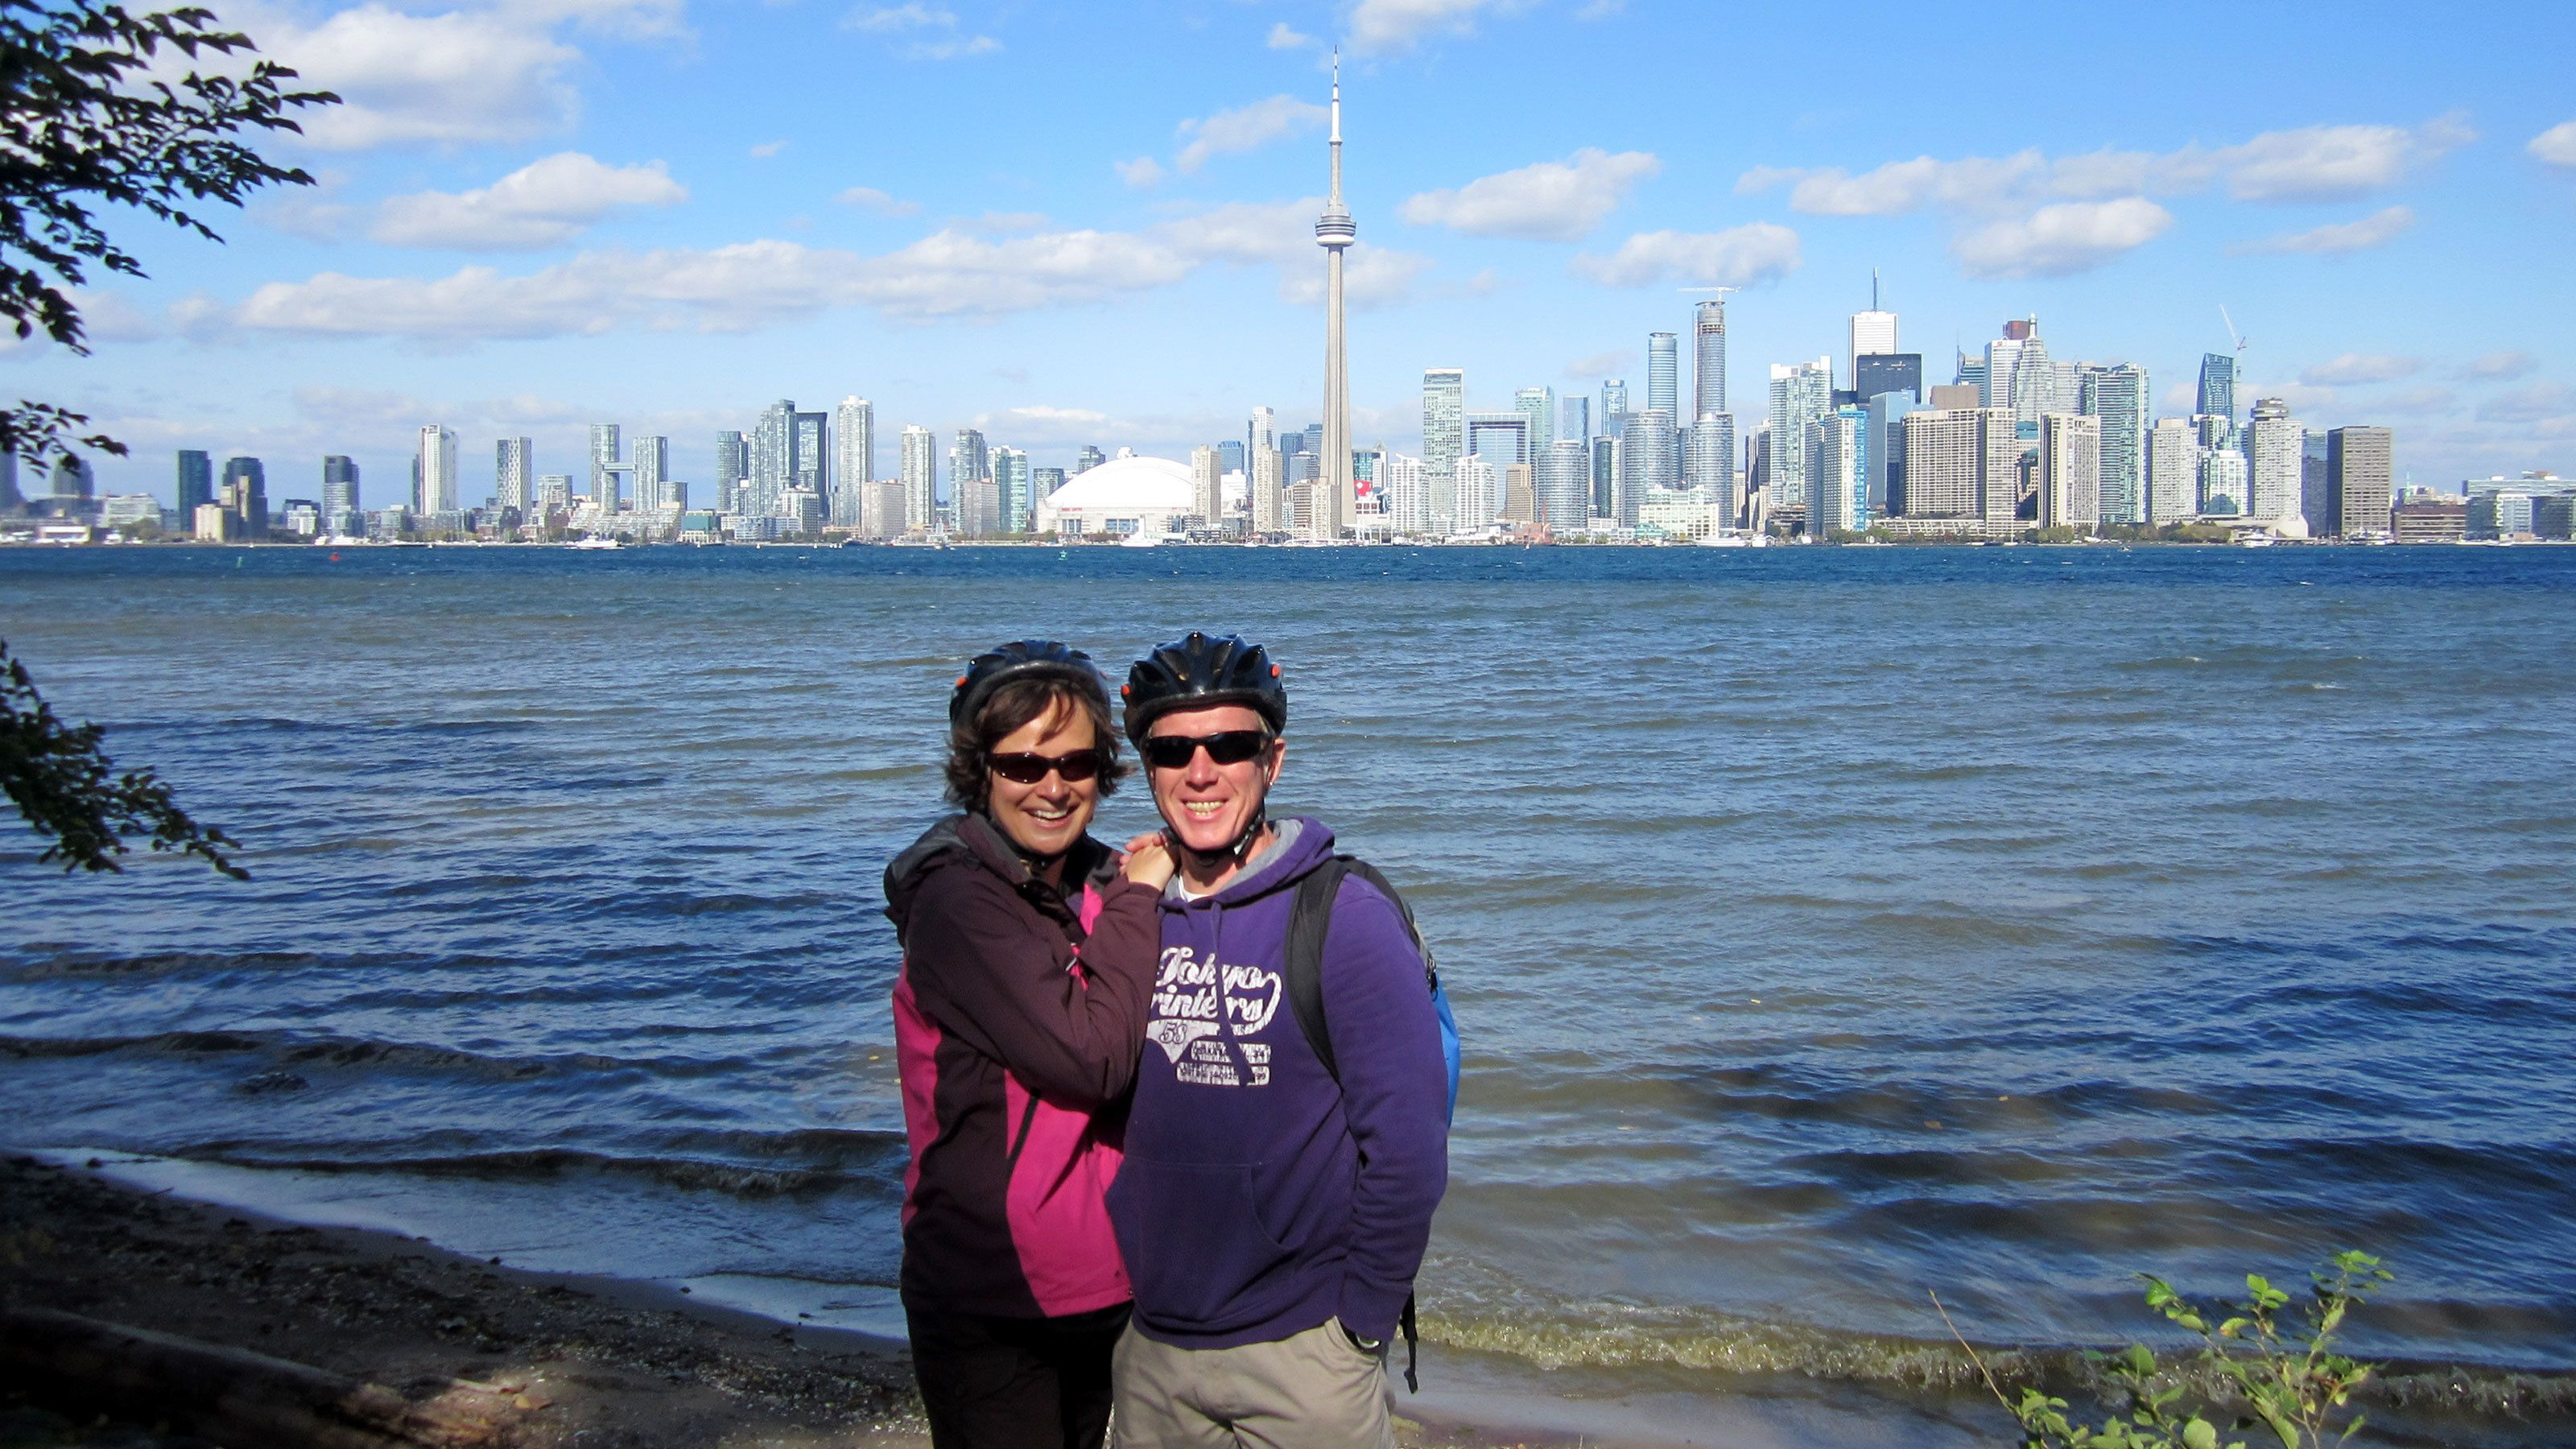 Two people pose for a photo in front of the Toronto skyline